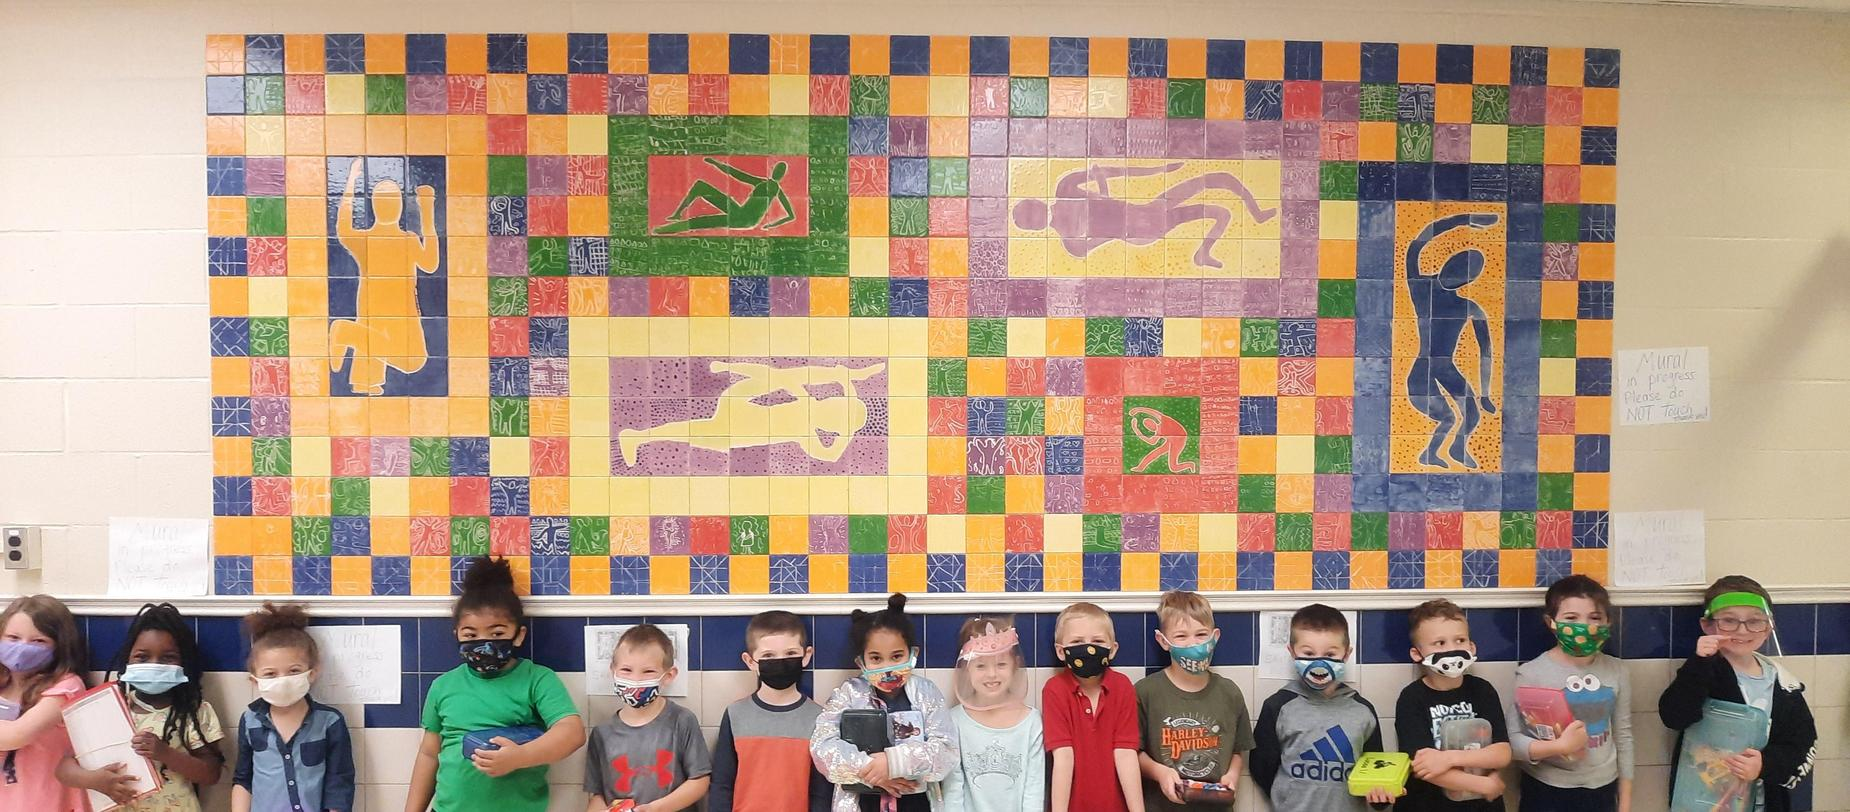 students posing in front of mural